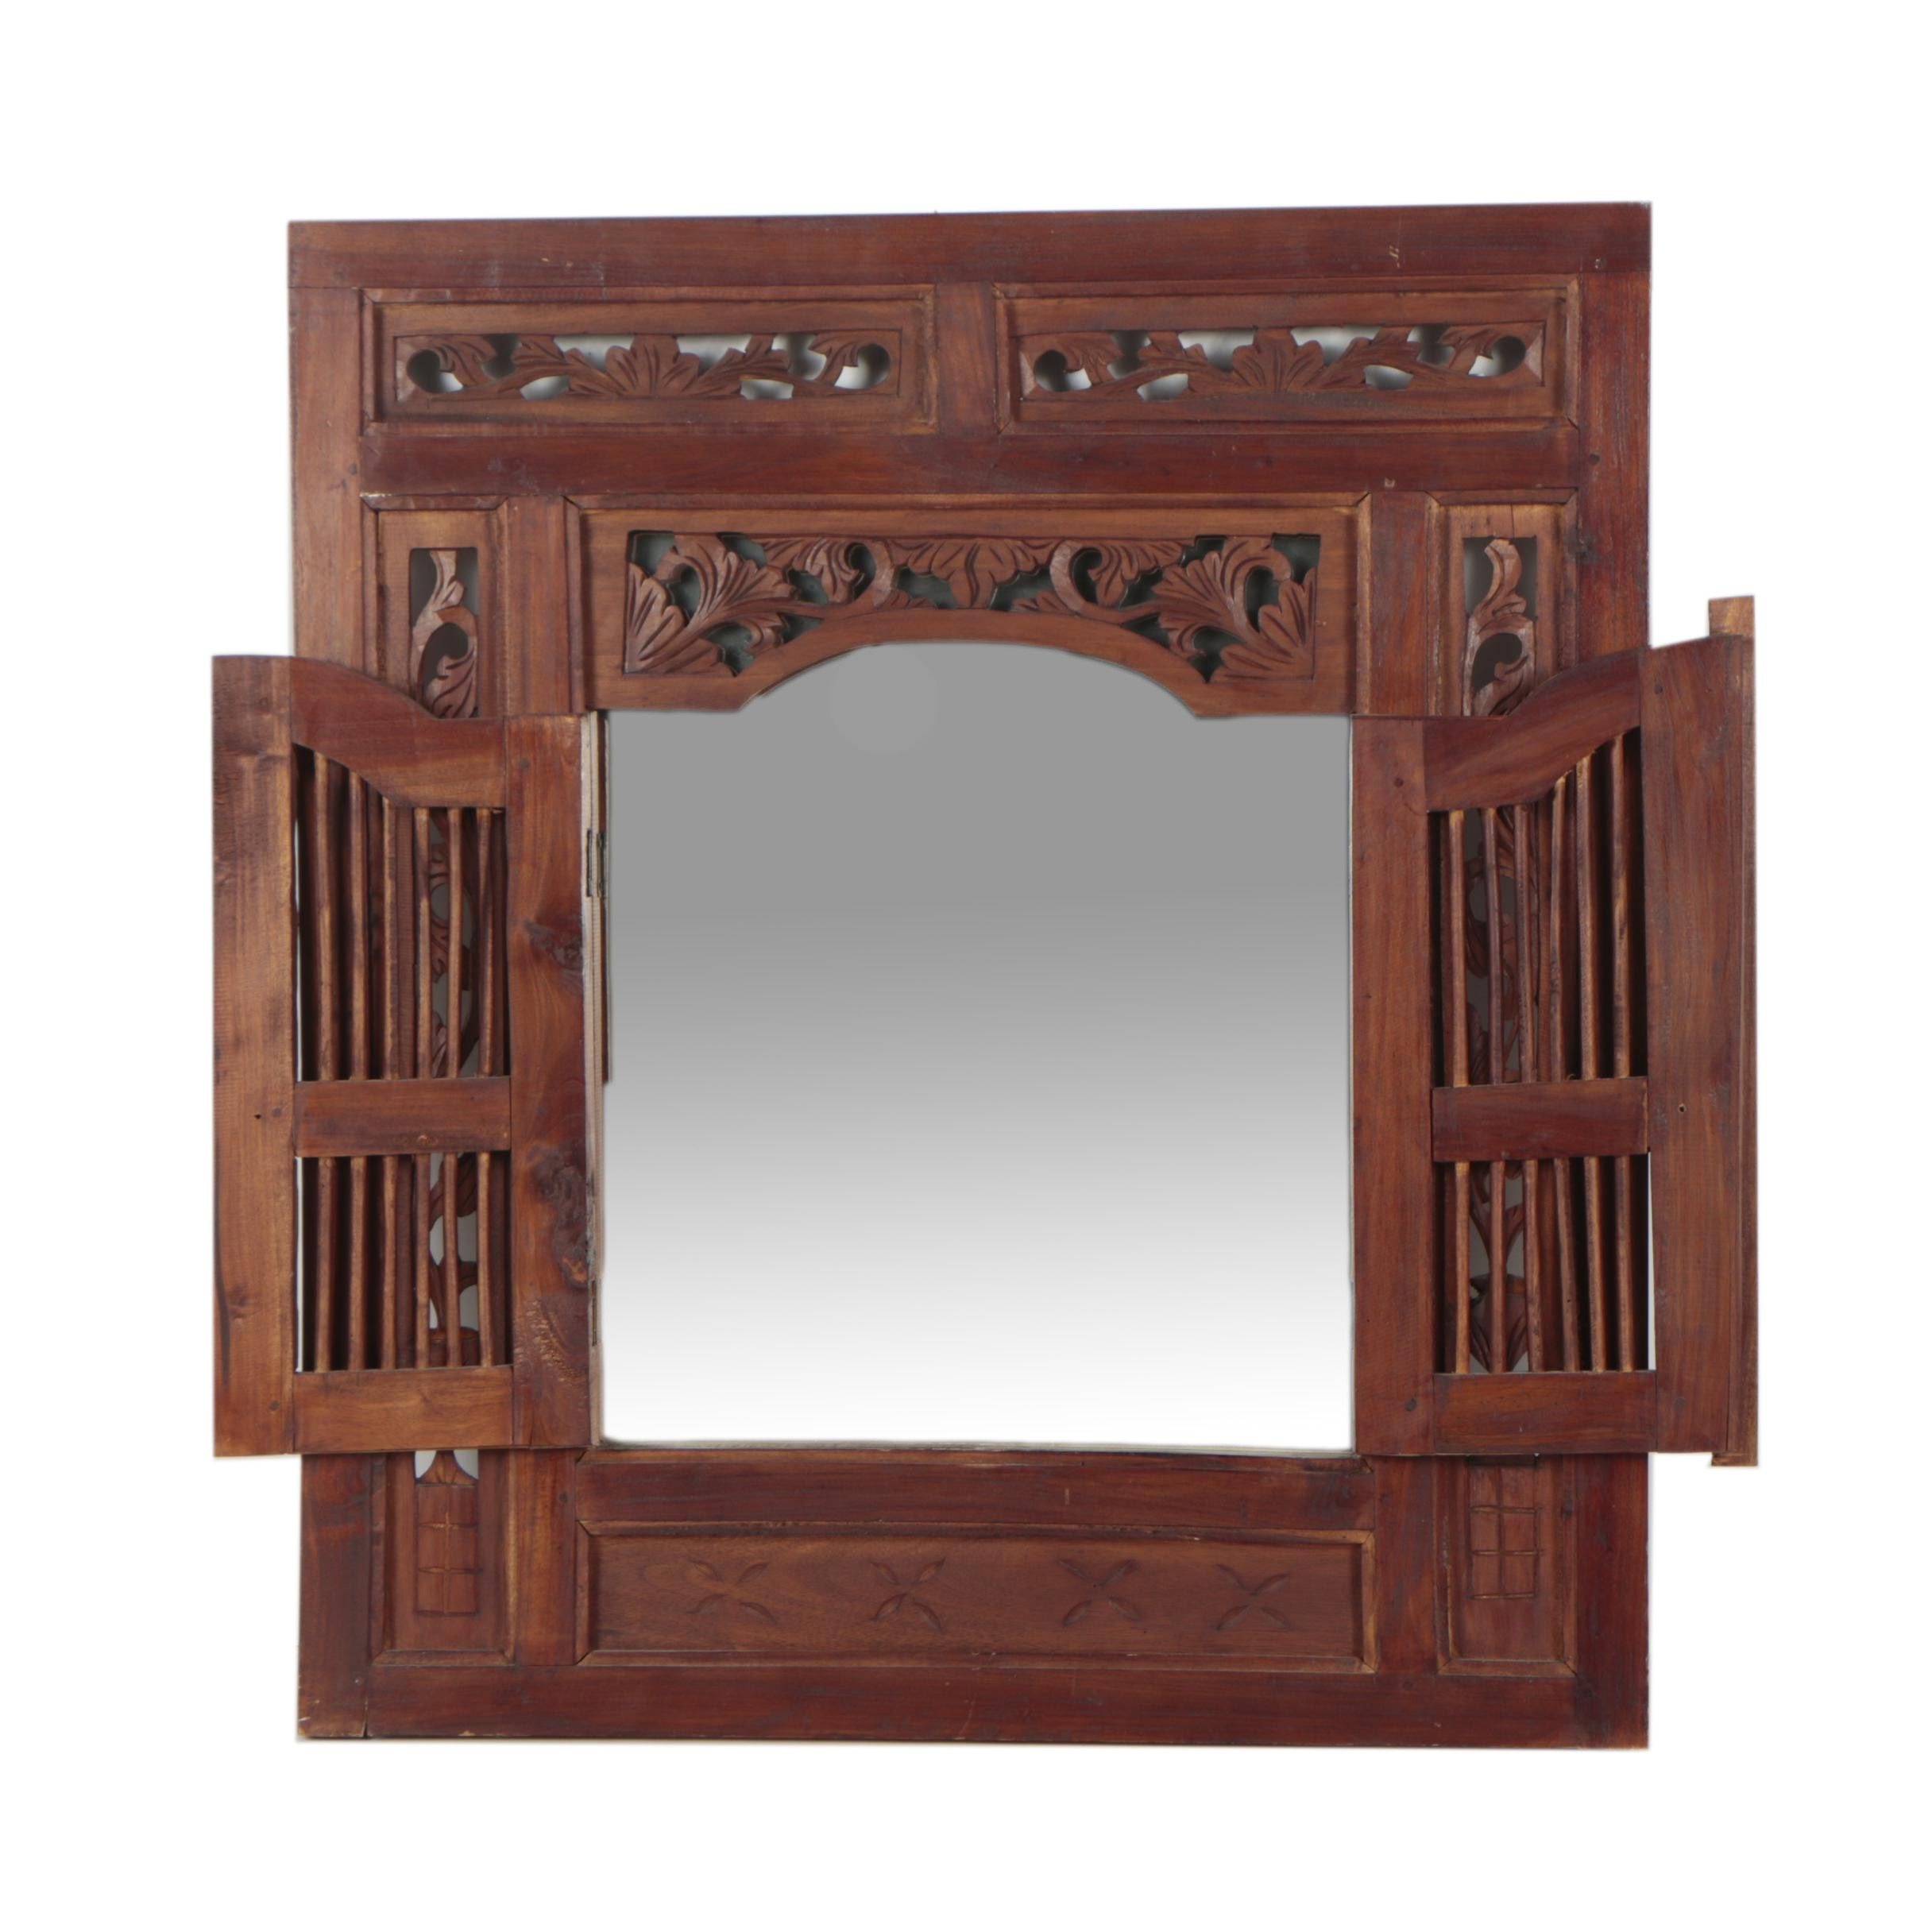 Teak Wood Framed Wall Mirror with Doors